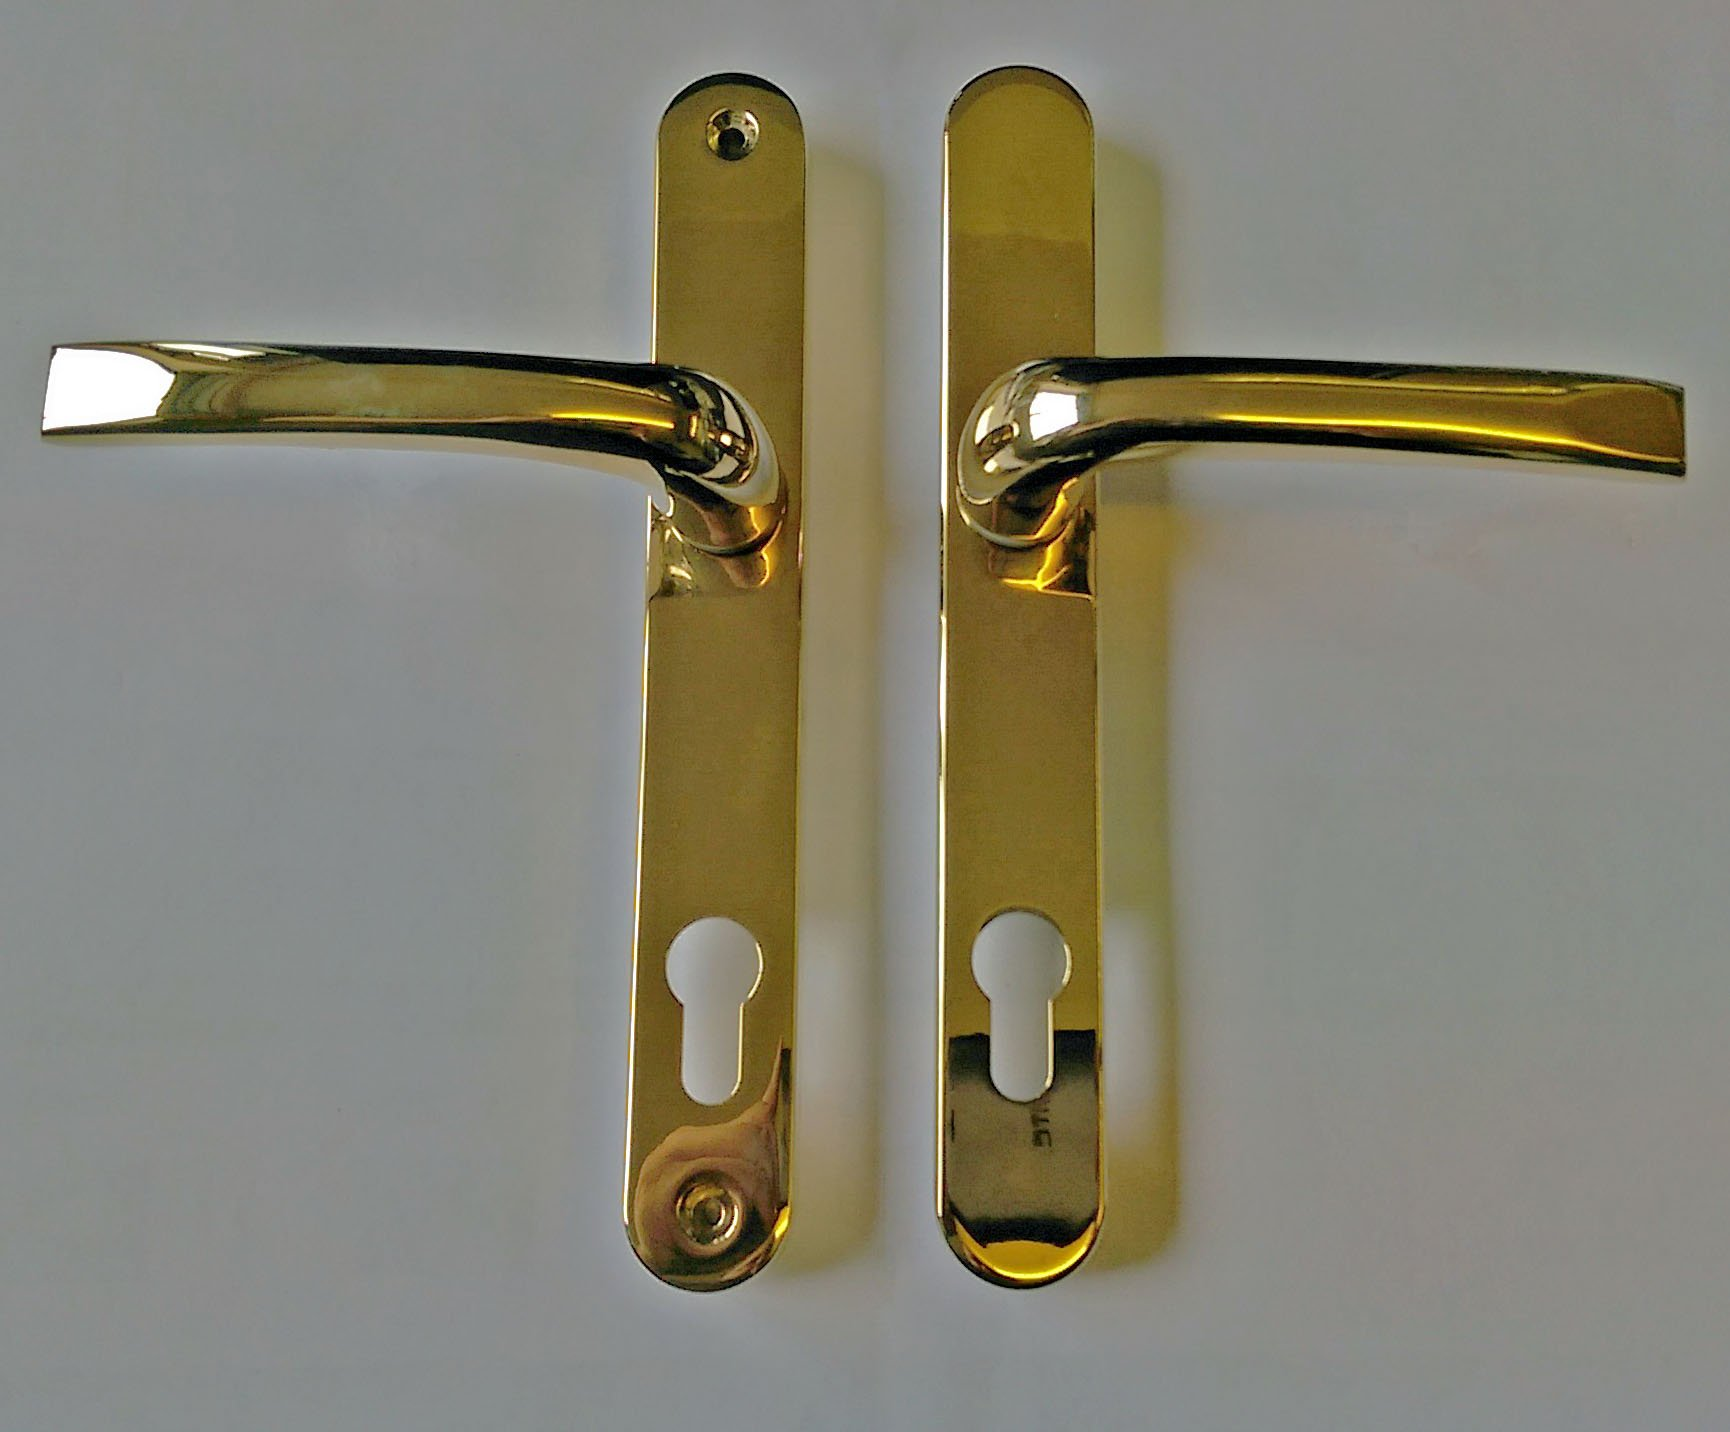 Mila 050424 Pro-Linea Gold PVD Lever Door Handle - Multipoint Door ...